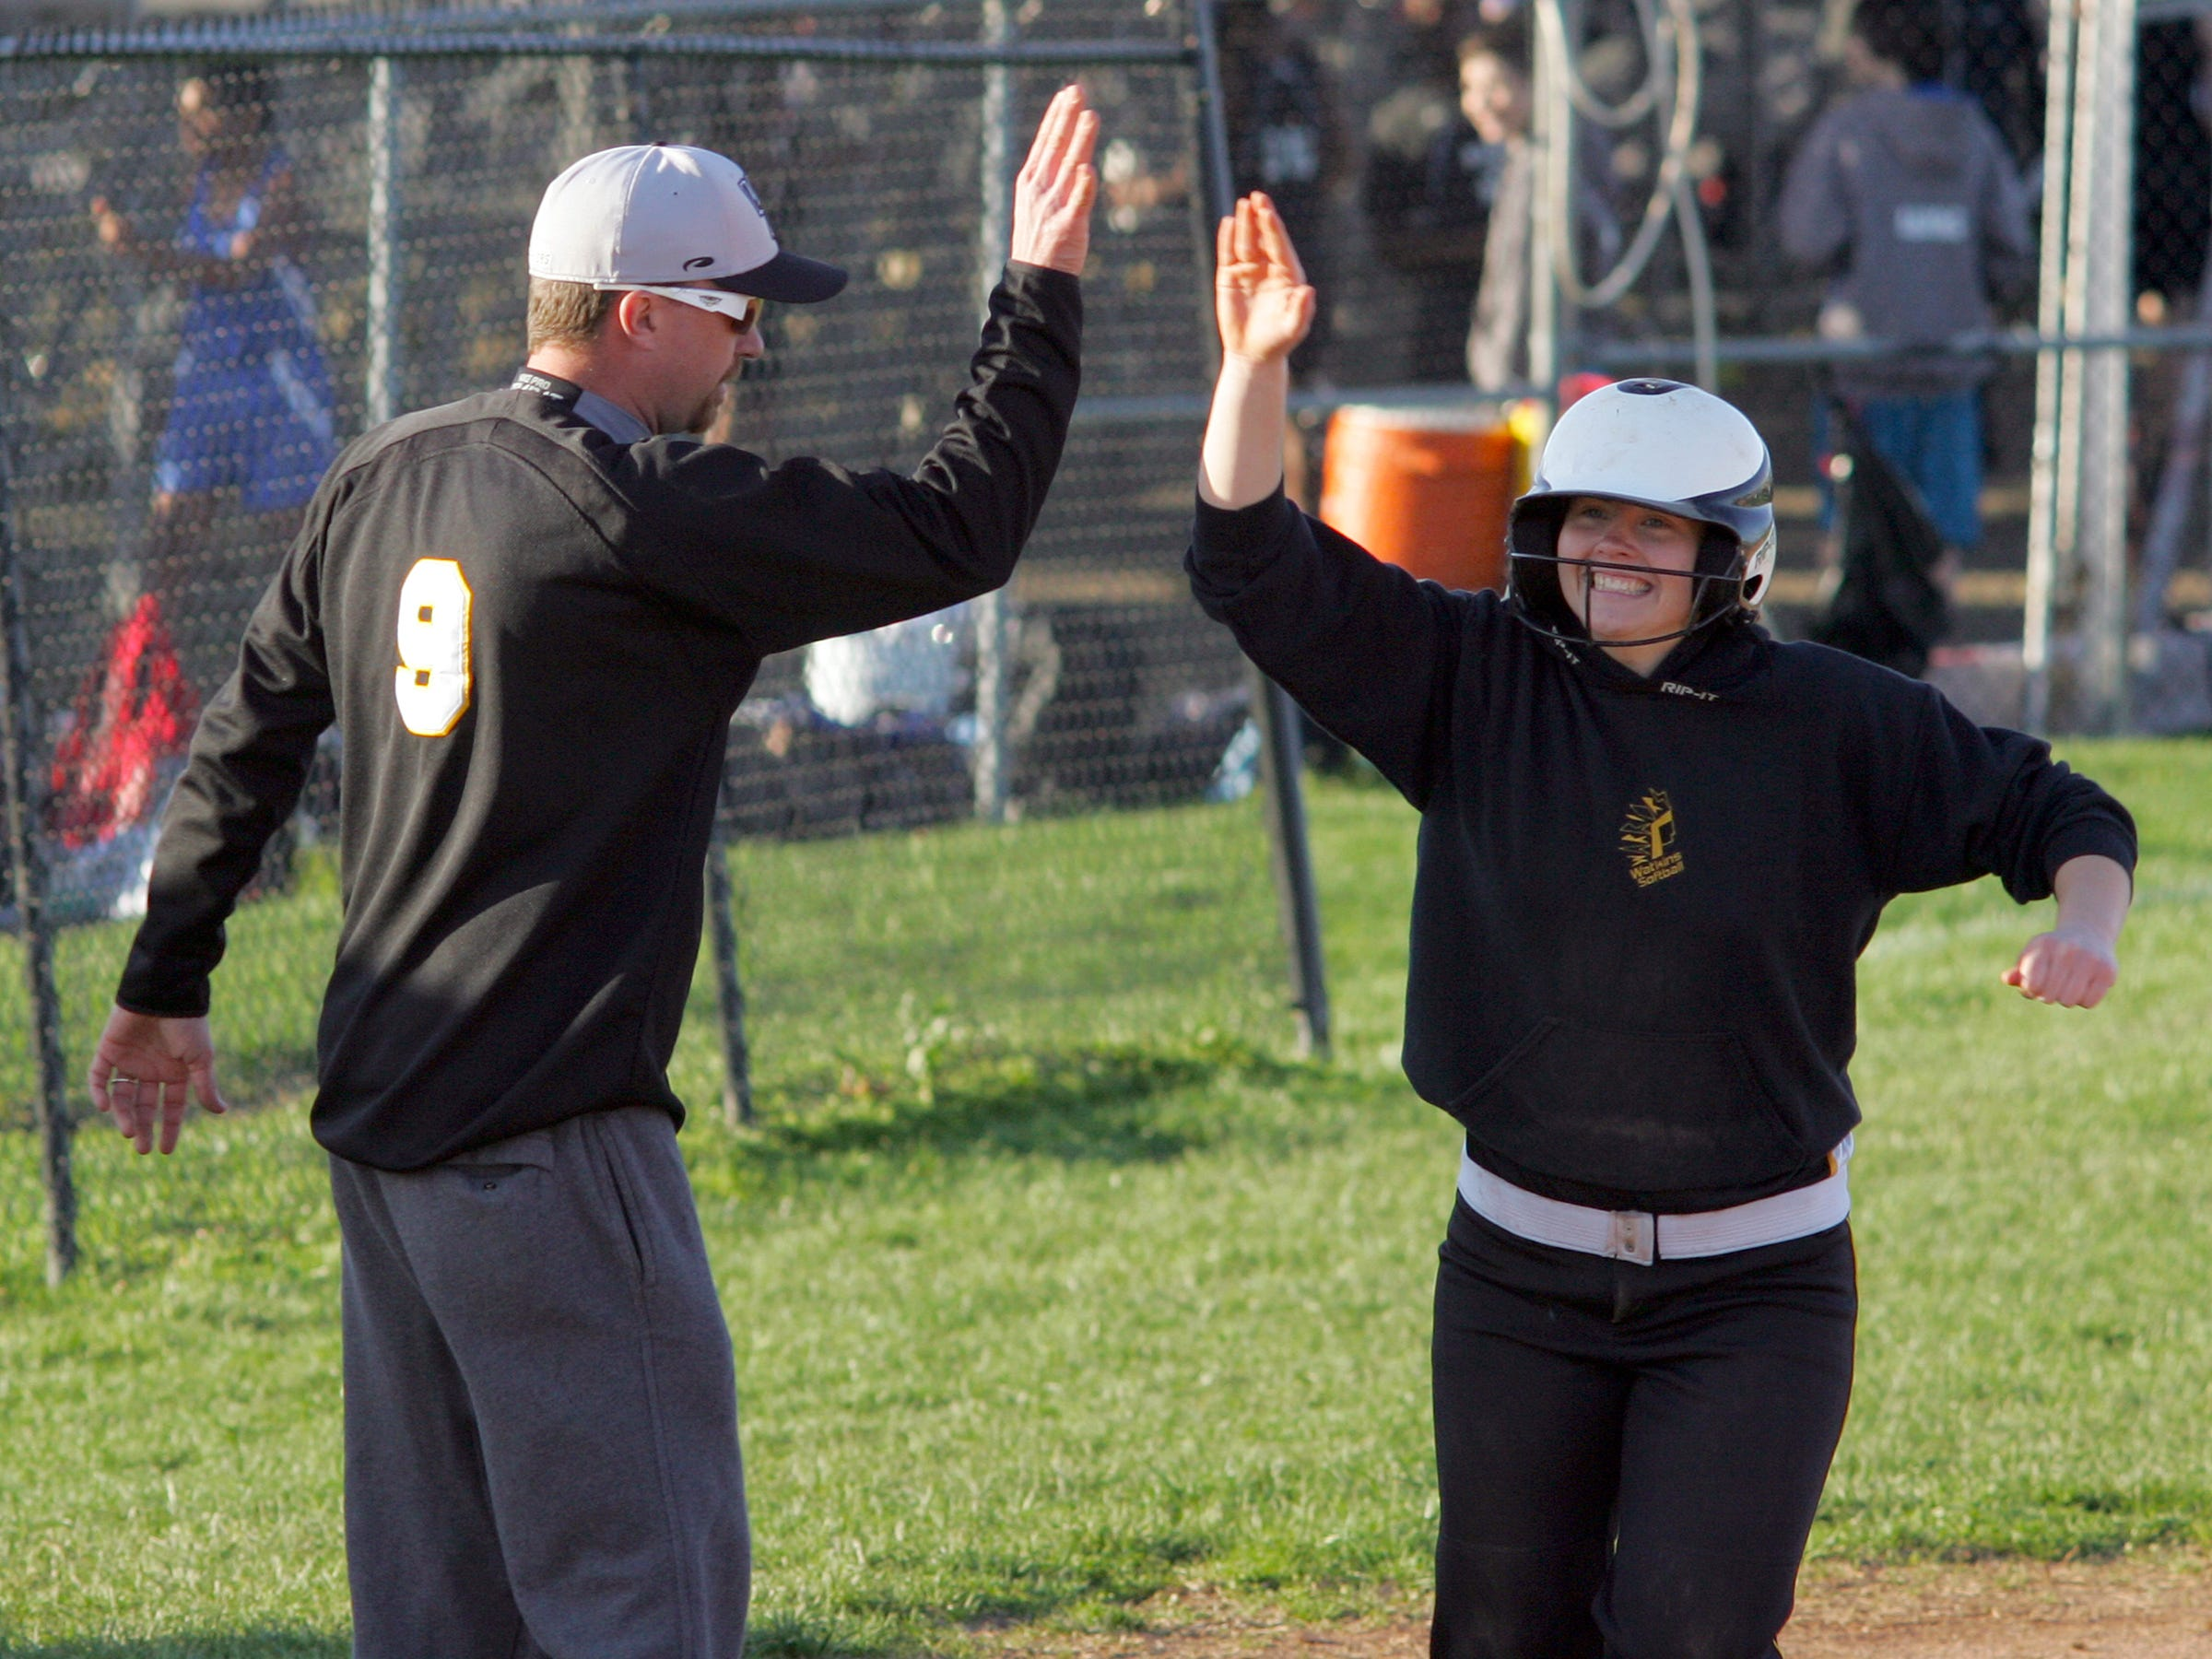 Watkins Memorial's Anna Shroyer high fives coach Mike Jellison after hitting a home run this past Friday during the team's 14-11 victory against Licking Heights.